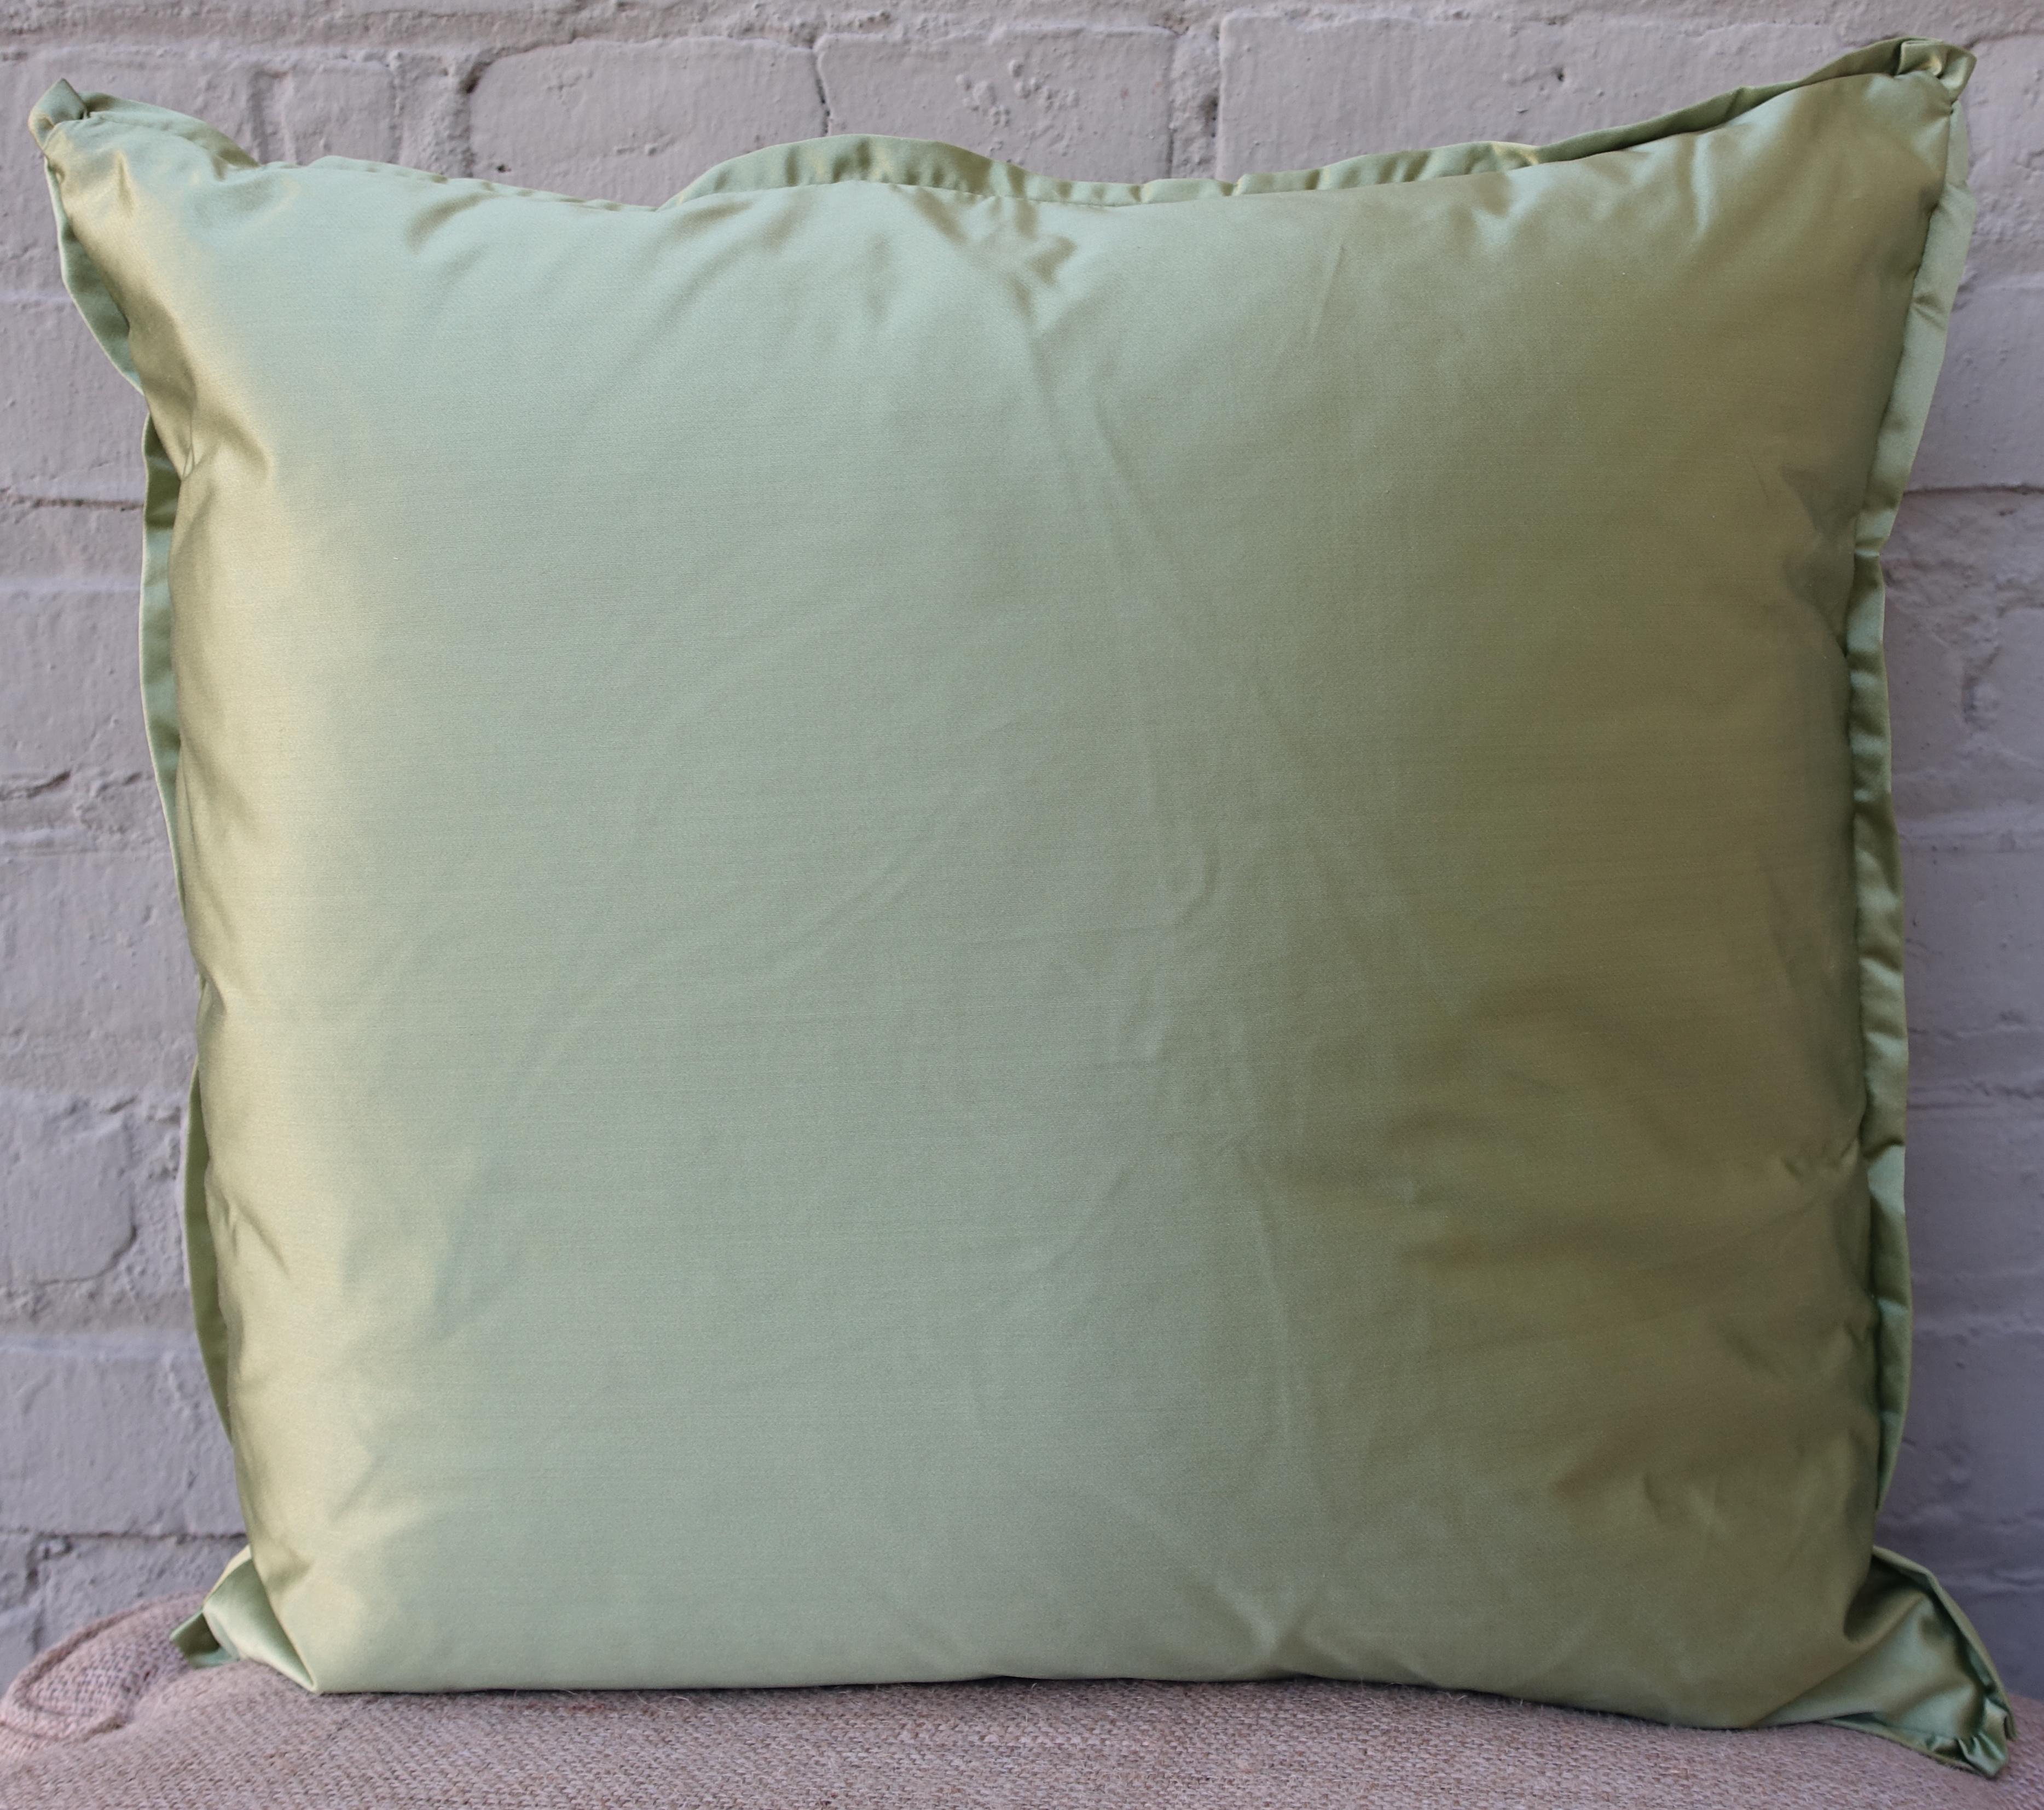 Orsini Green U0026 Gold Fortuny Pillows   A Pair   Image 5 ...